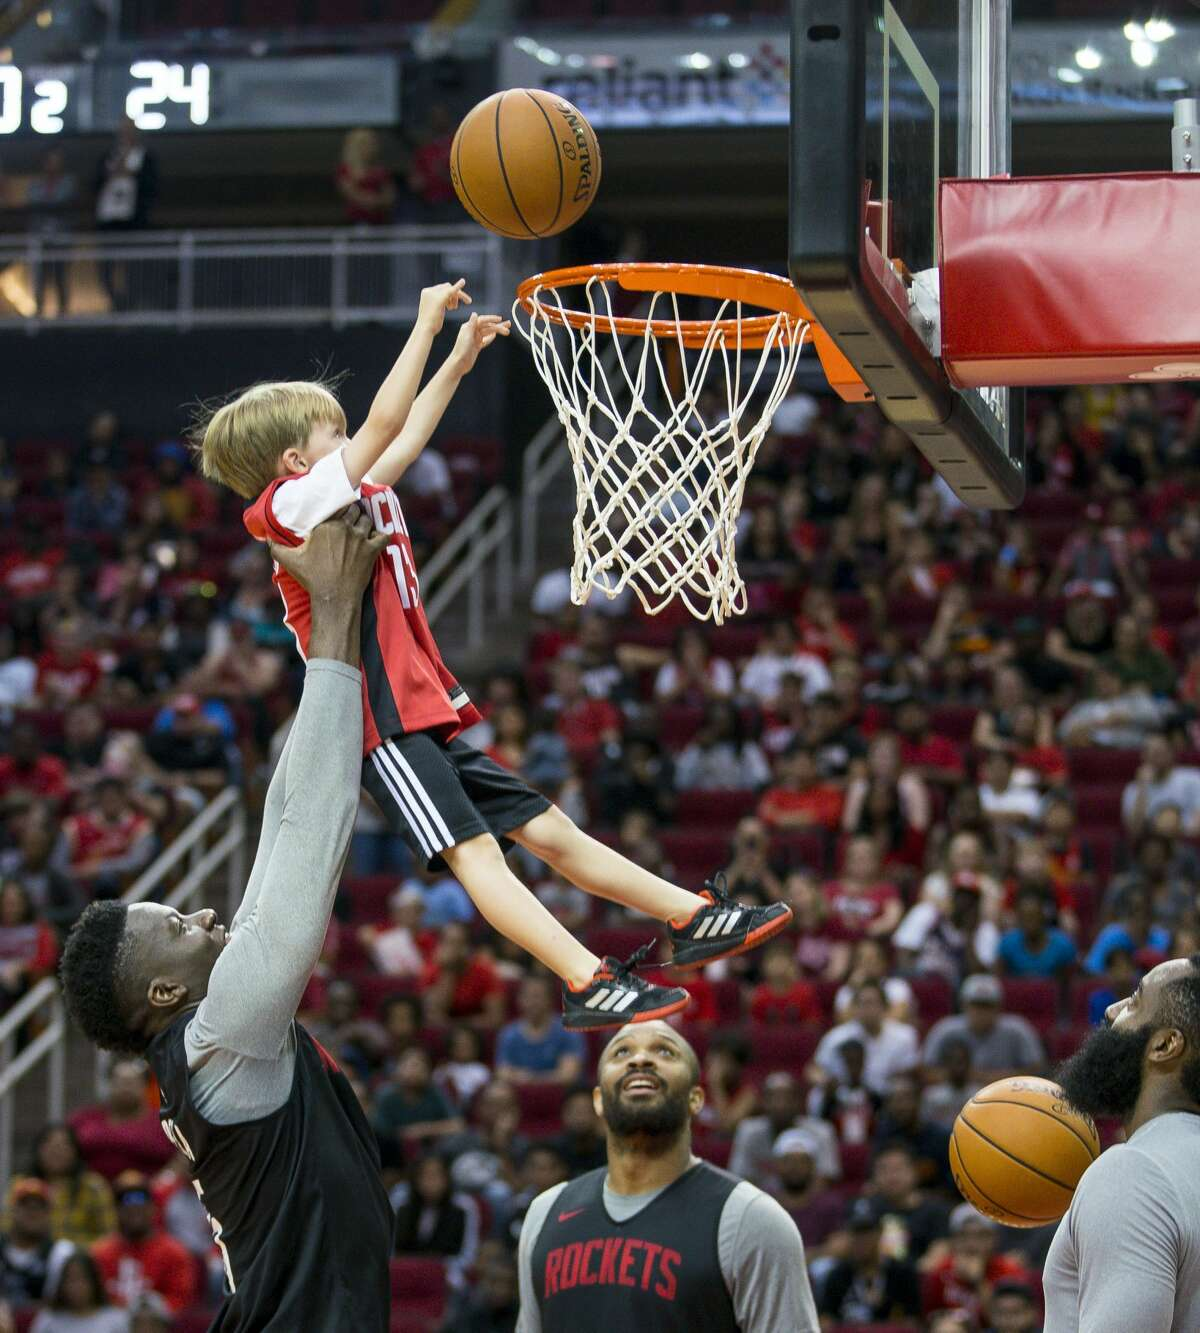 With Houston Rockets guards Eric Gordon and James Harden watching, center Clint Capela picks up six-year-old Houston Radack during a game of knockout with young fans during a Rockets practice open to members of the public at Toyota Center in Houston, Monday, Oct. 14, 2019.